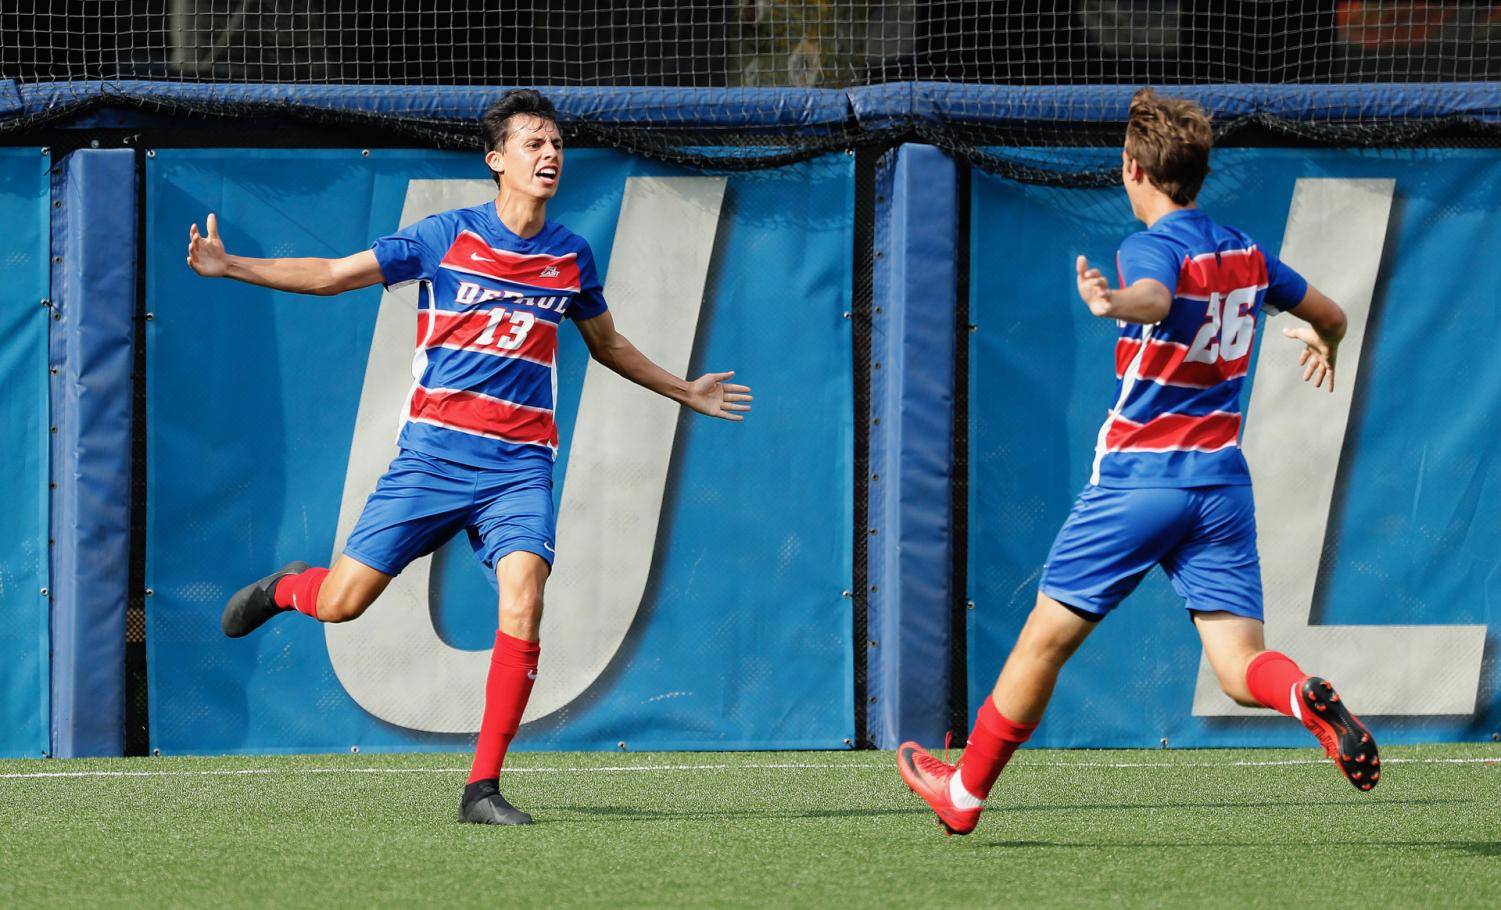 Monday's goal was Mojarro's first since 2016 and only his second career goal. Photo courtesy of DePaul Athletics